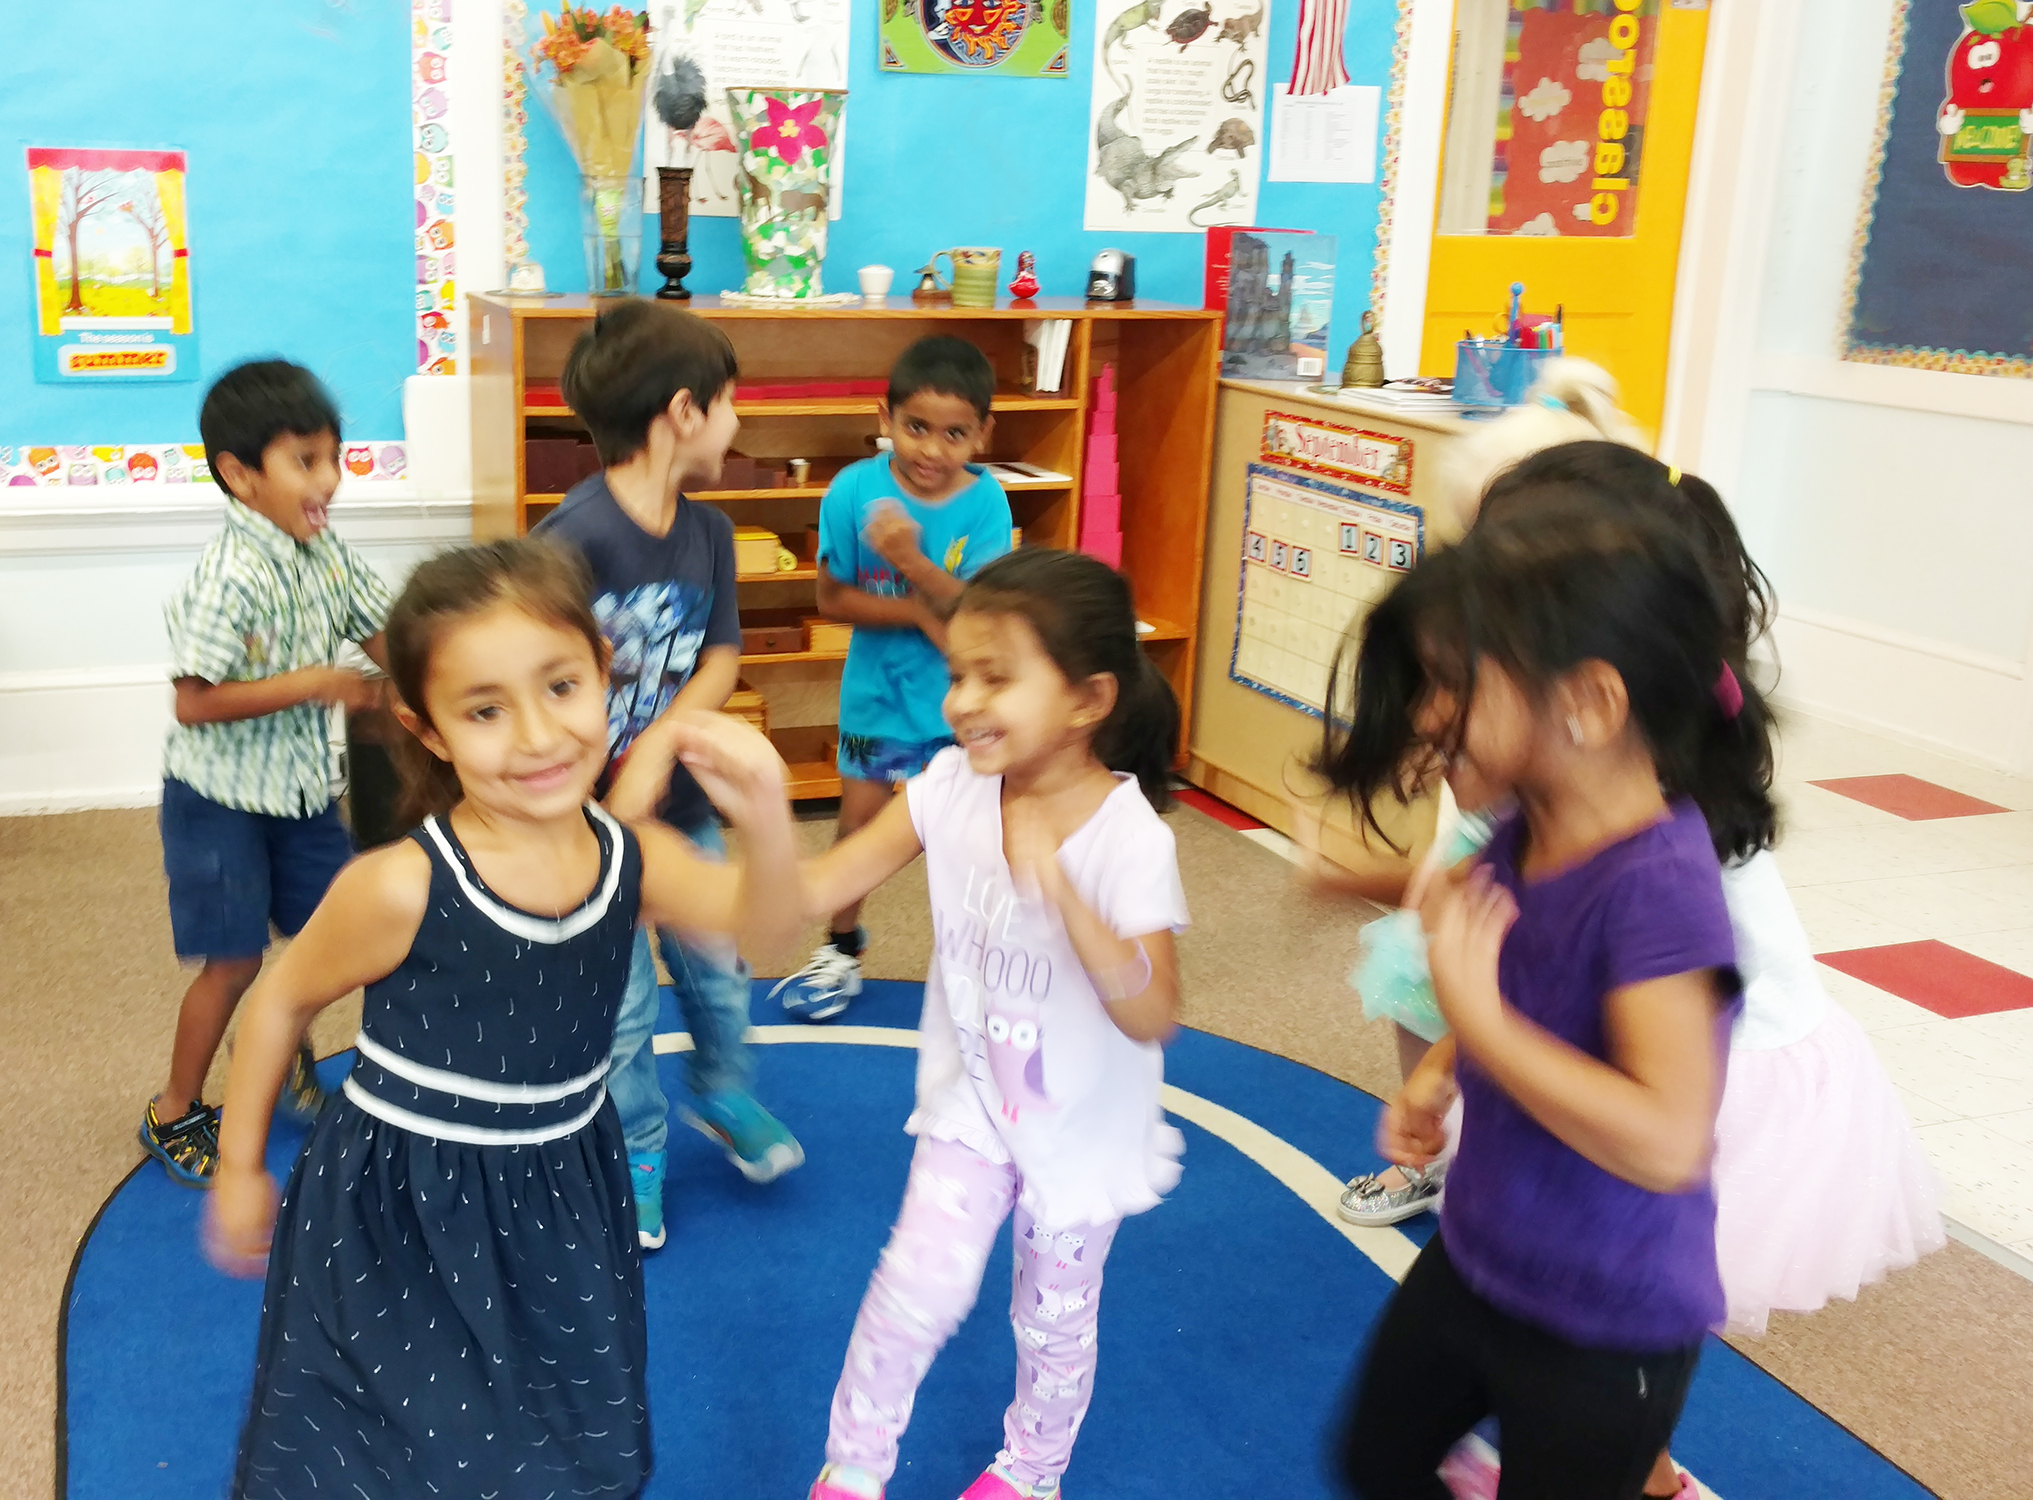 Movement is an essential part of the Montessori environment. This allows the students to have self expression, identify with rhythm, rhyming words and of course the art of memorizing fantastic educational songs.